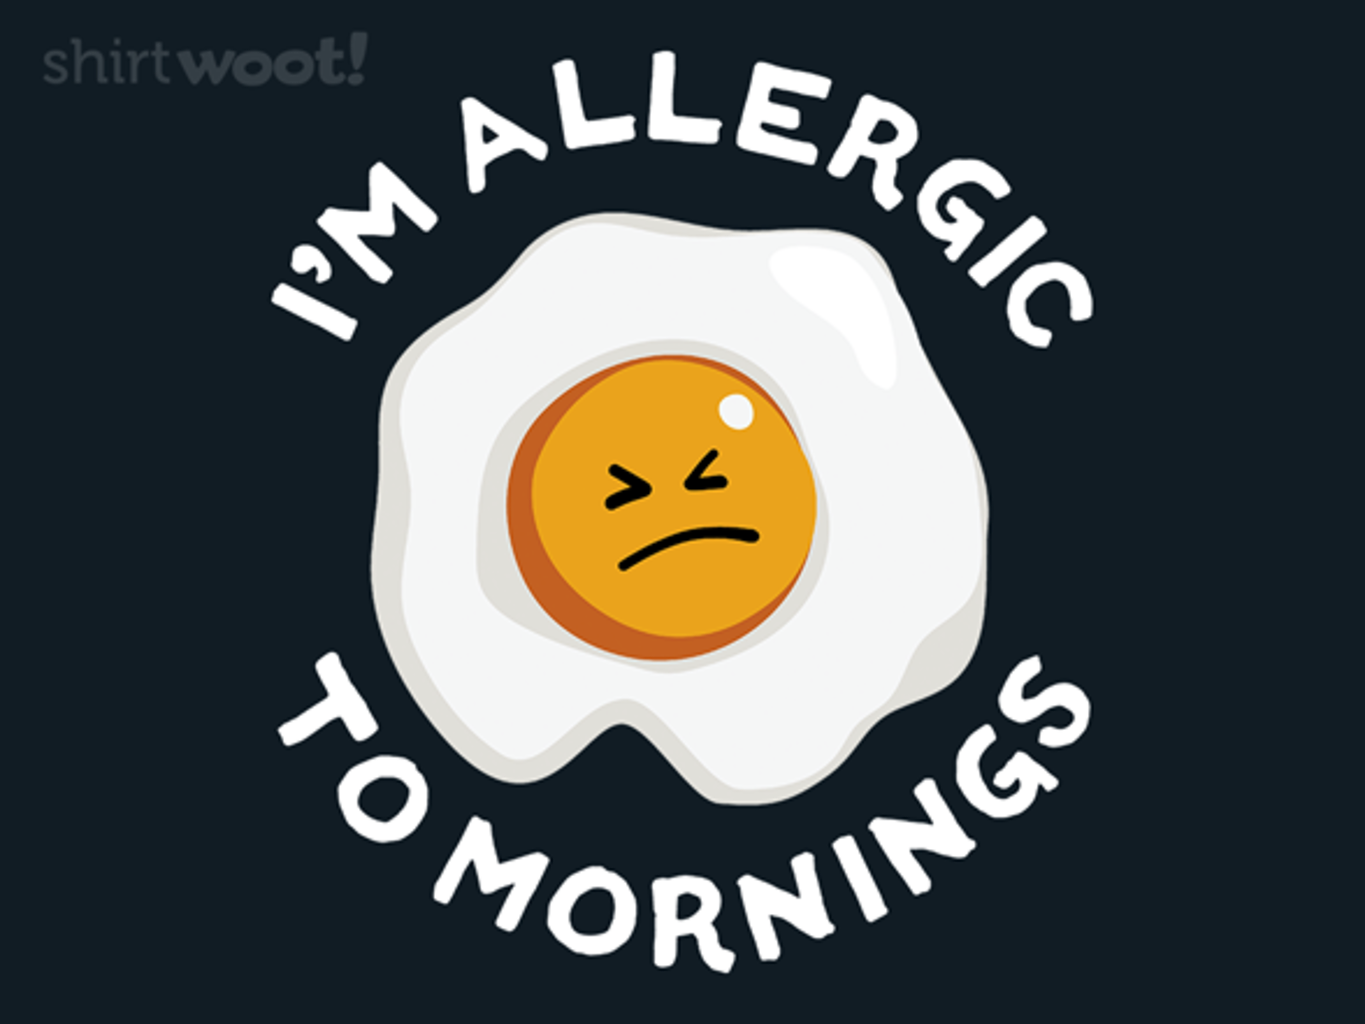 Woot!: I'm Allergic to Mornings